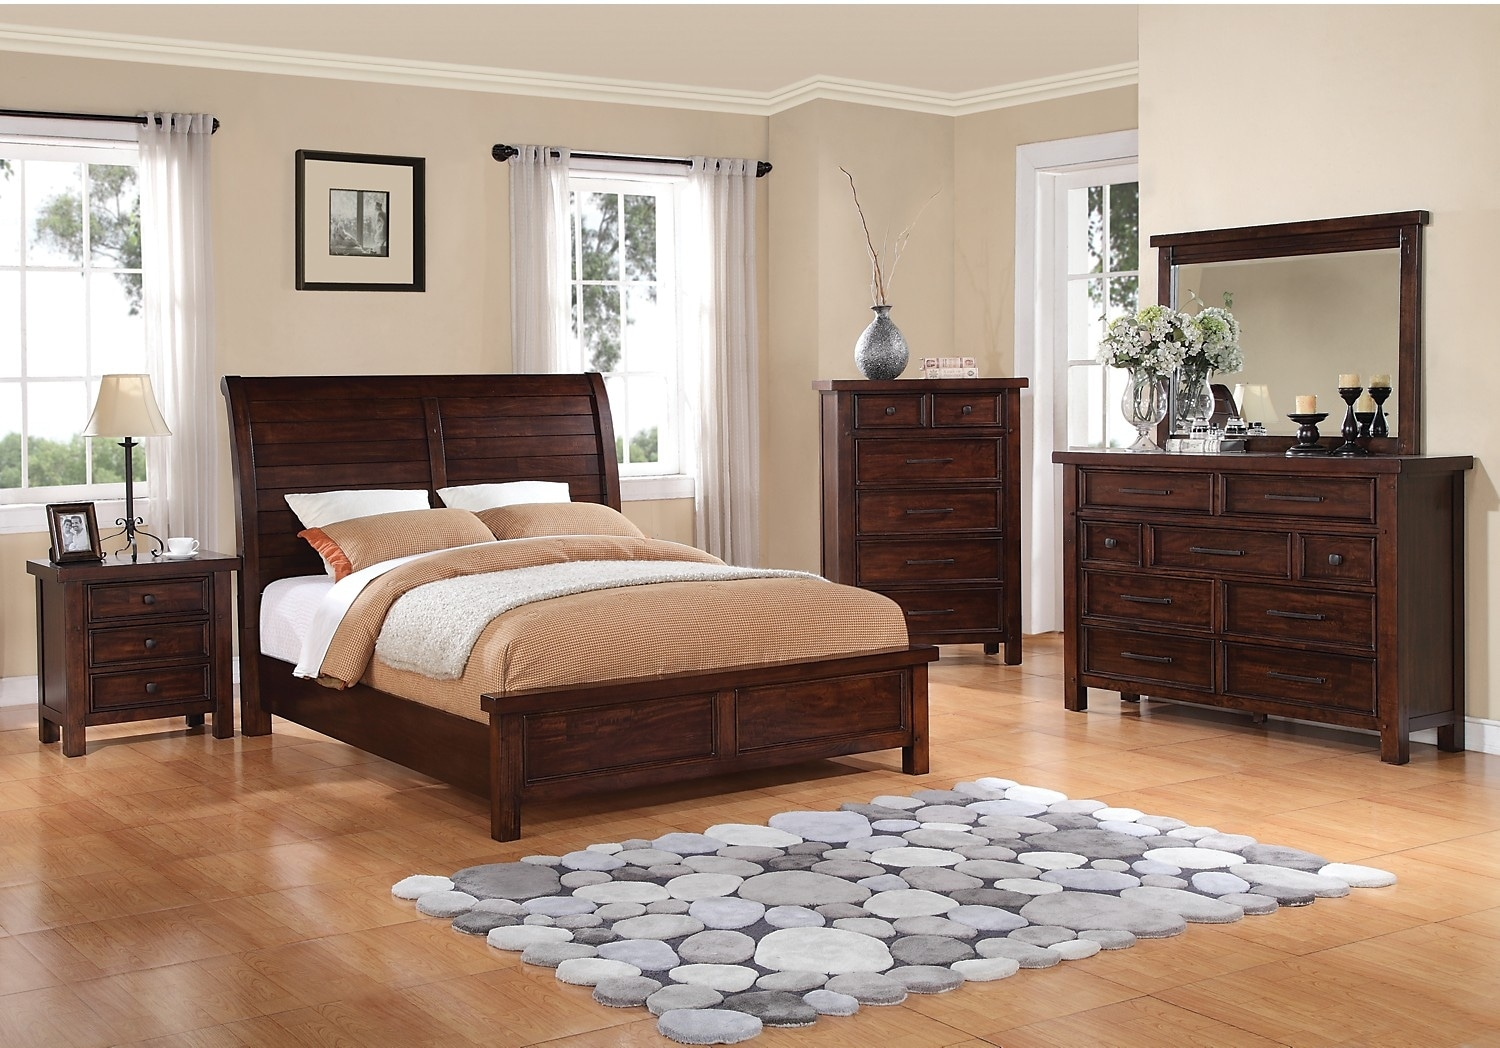 Bedroom Furniture - Sonoma 8-Piece King Bedroom Package – Burnished Mango